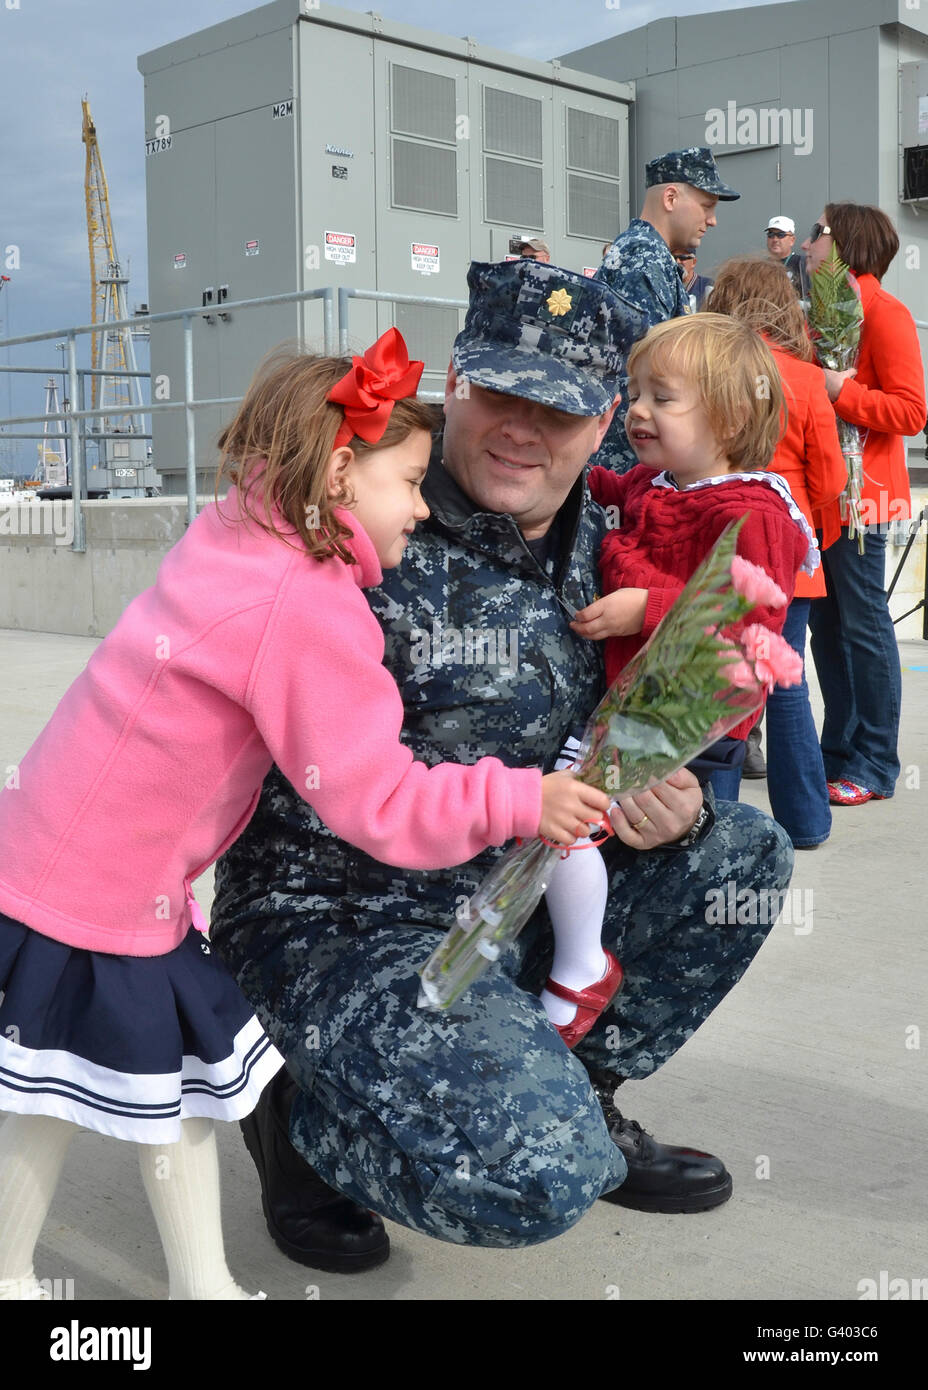 U.S. Navy sailors embrace their loved ones during homecoming celebration. - Stock Image